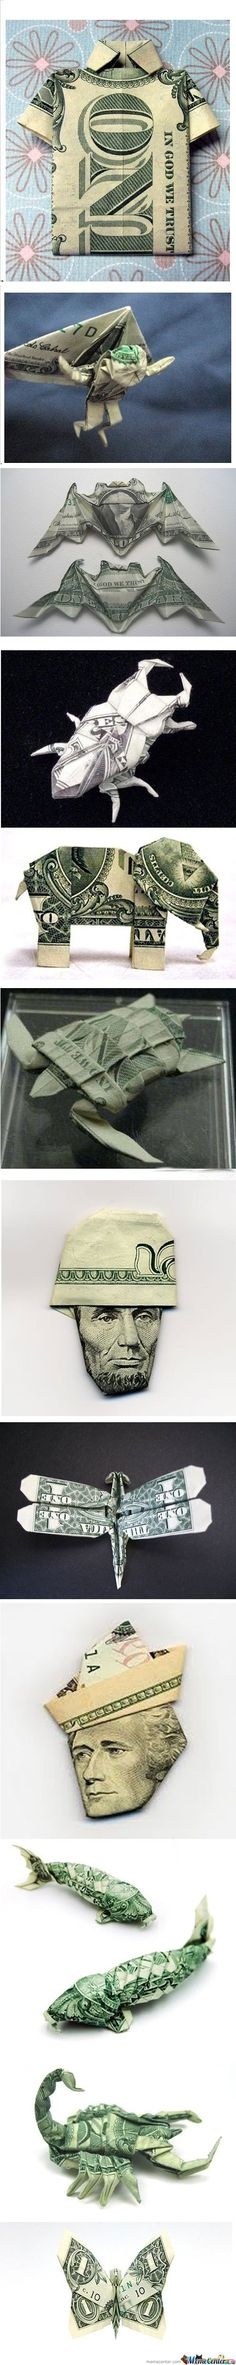 Money origami. HA!